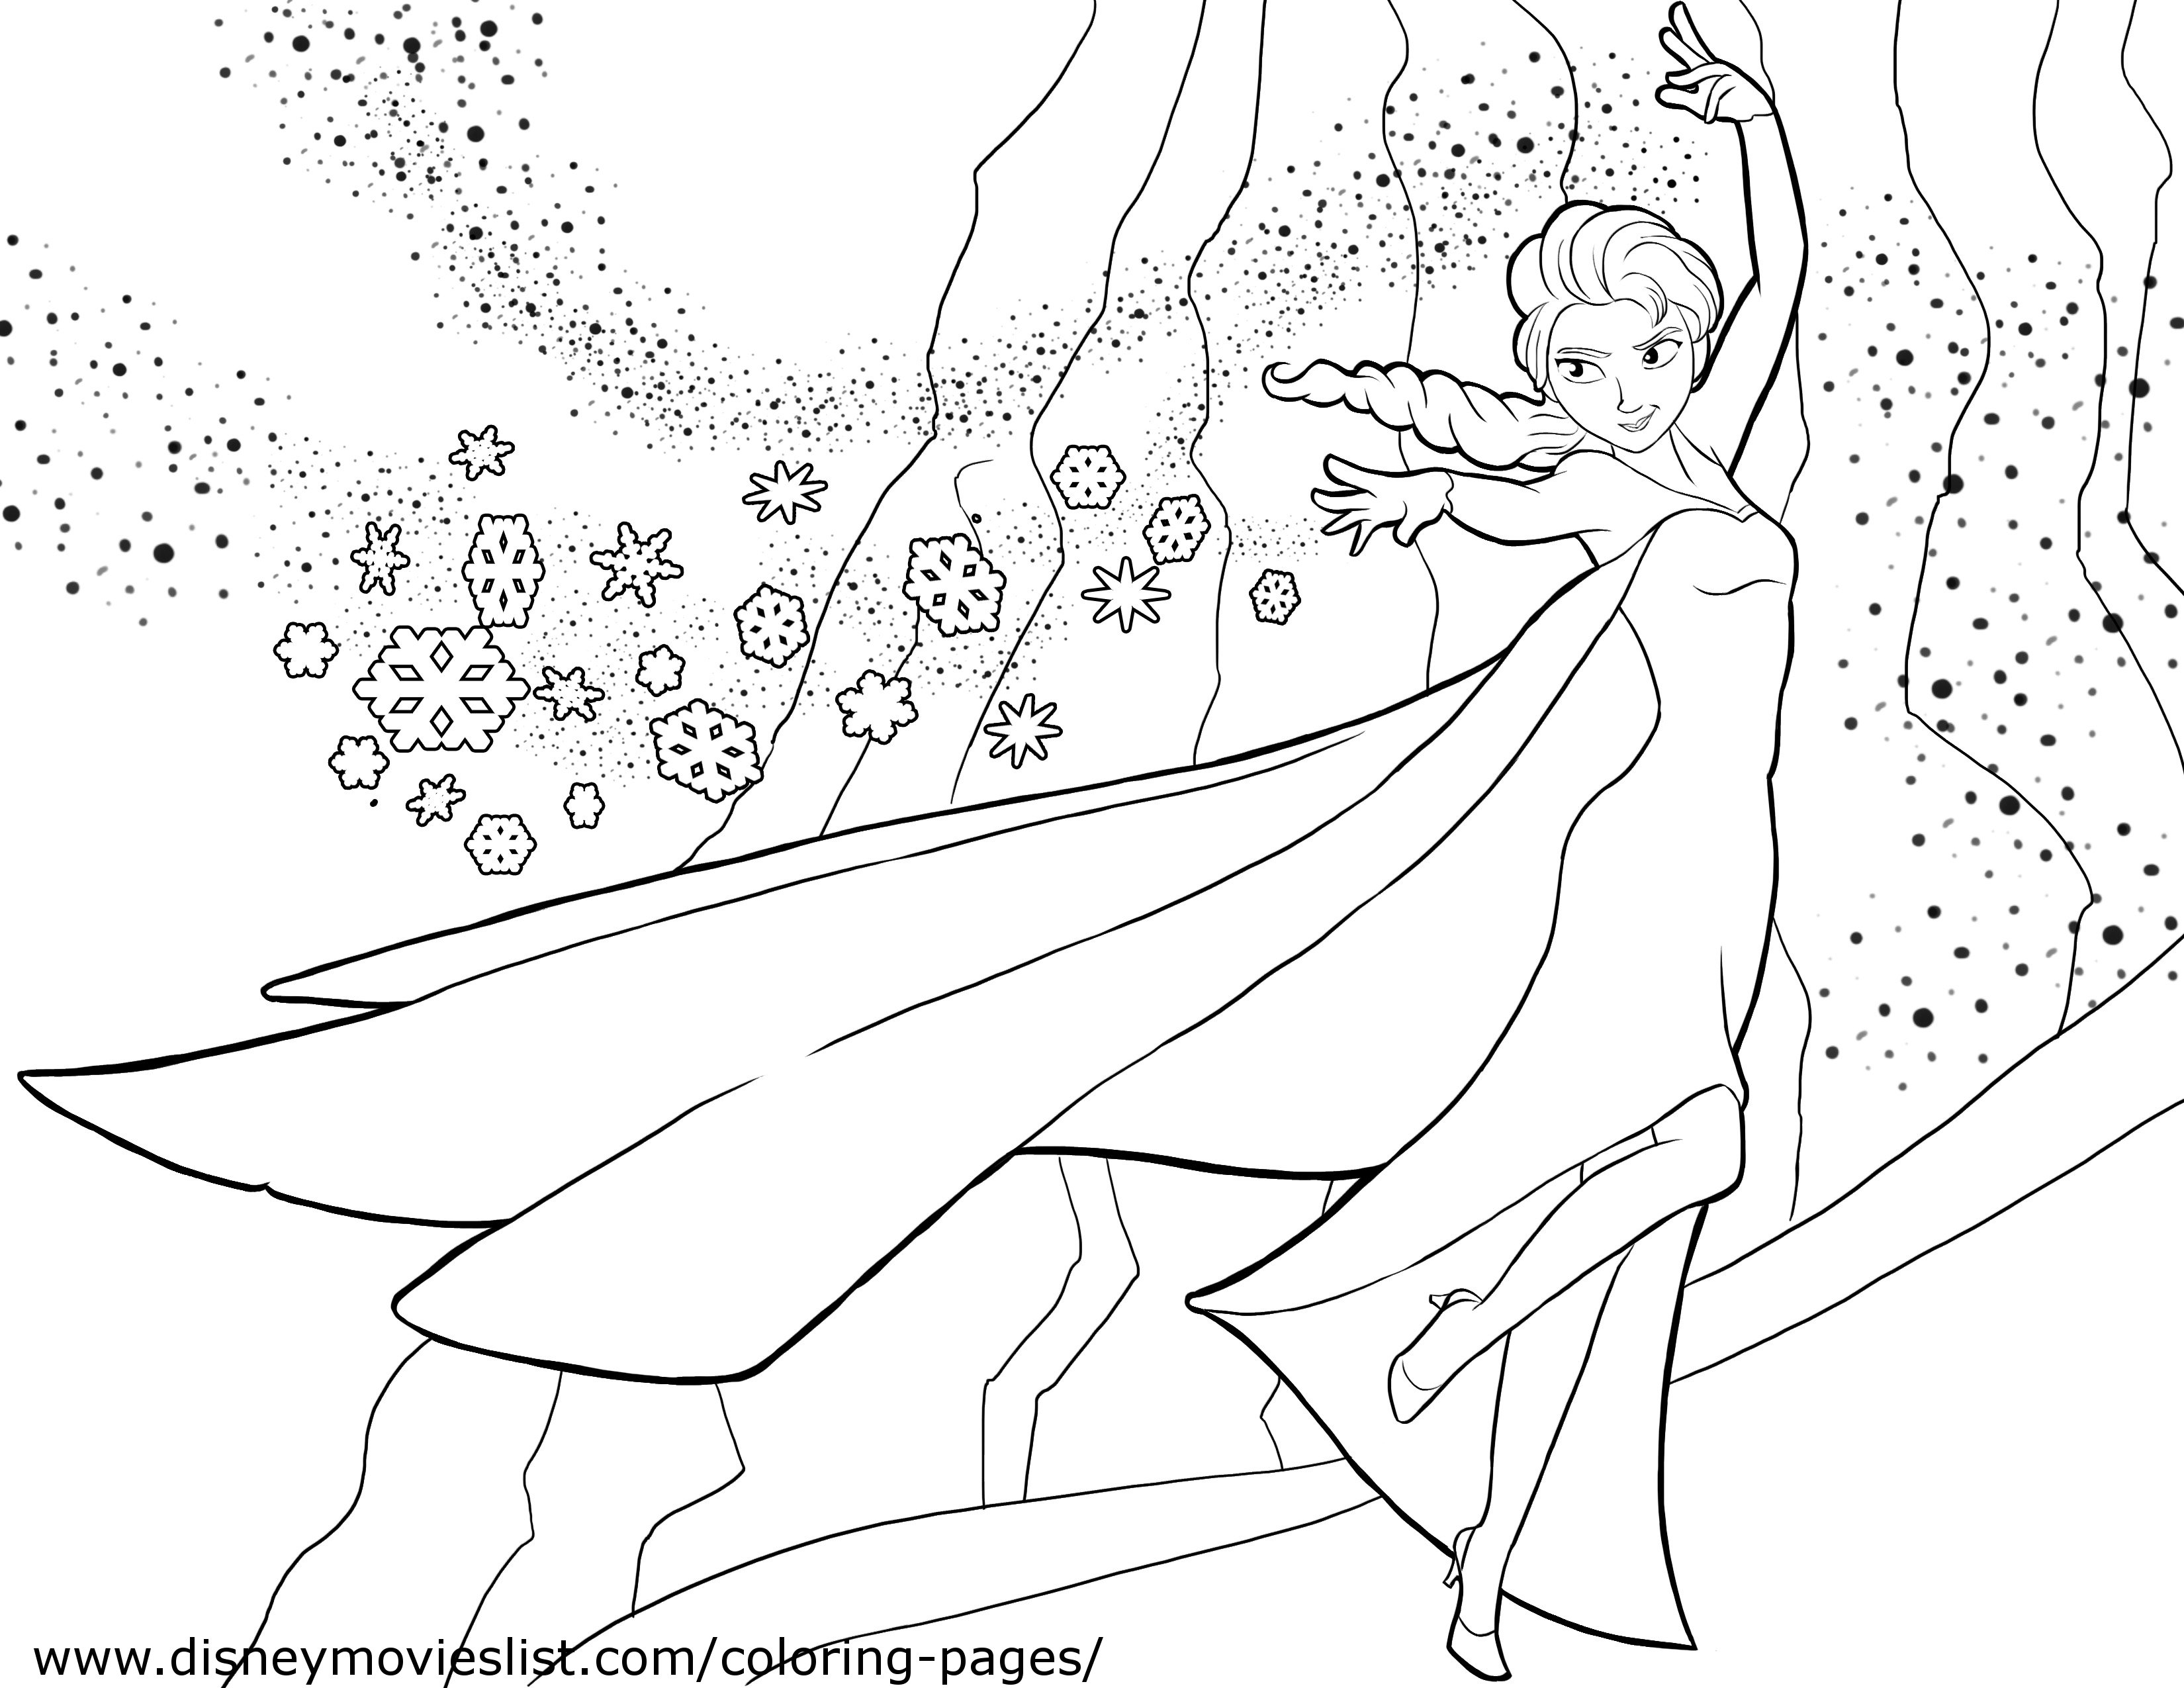 Elsa Coloring Page - Elsa the Snow Queen Photo (36145806 ...